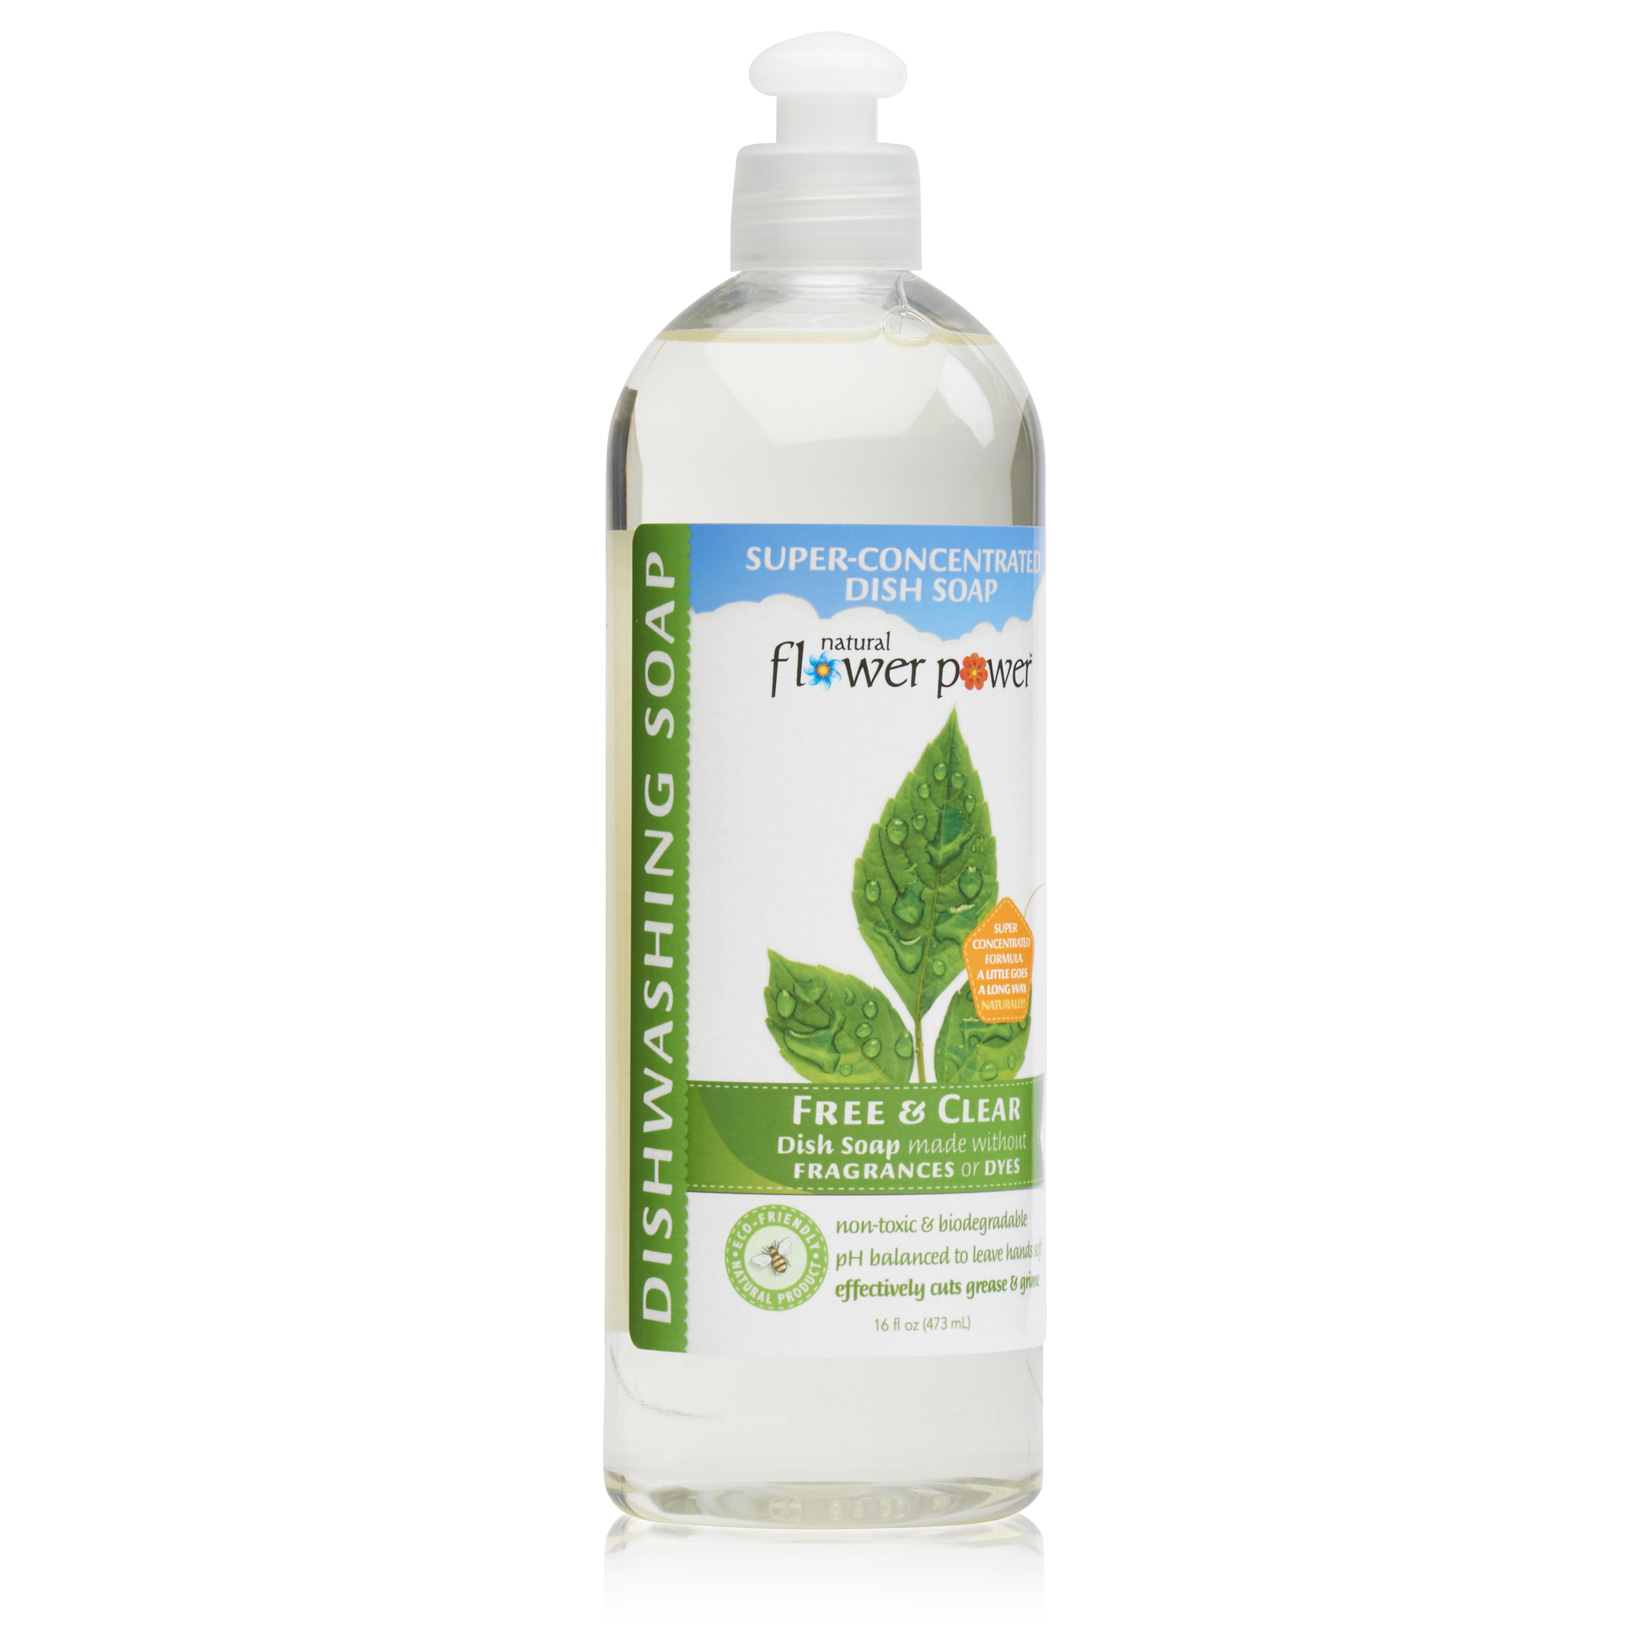 Natural Dish Soap Free & Clear – Profile